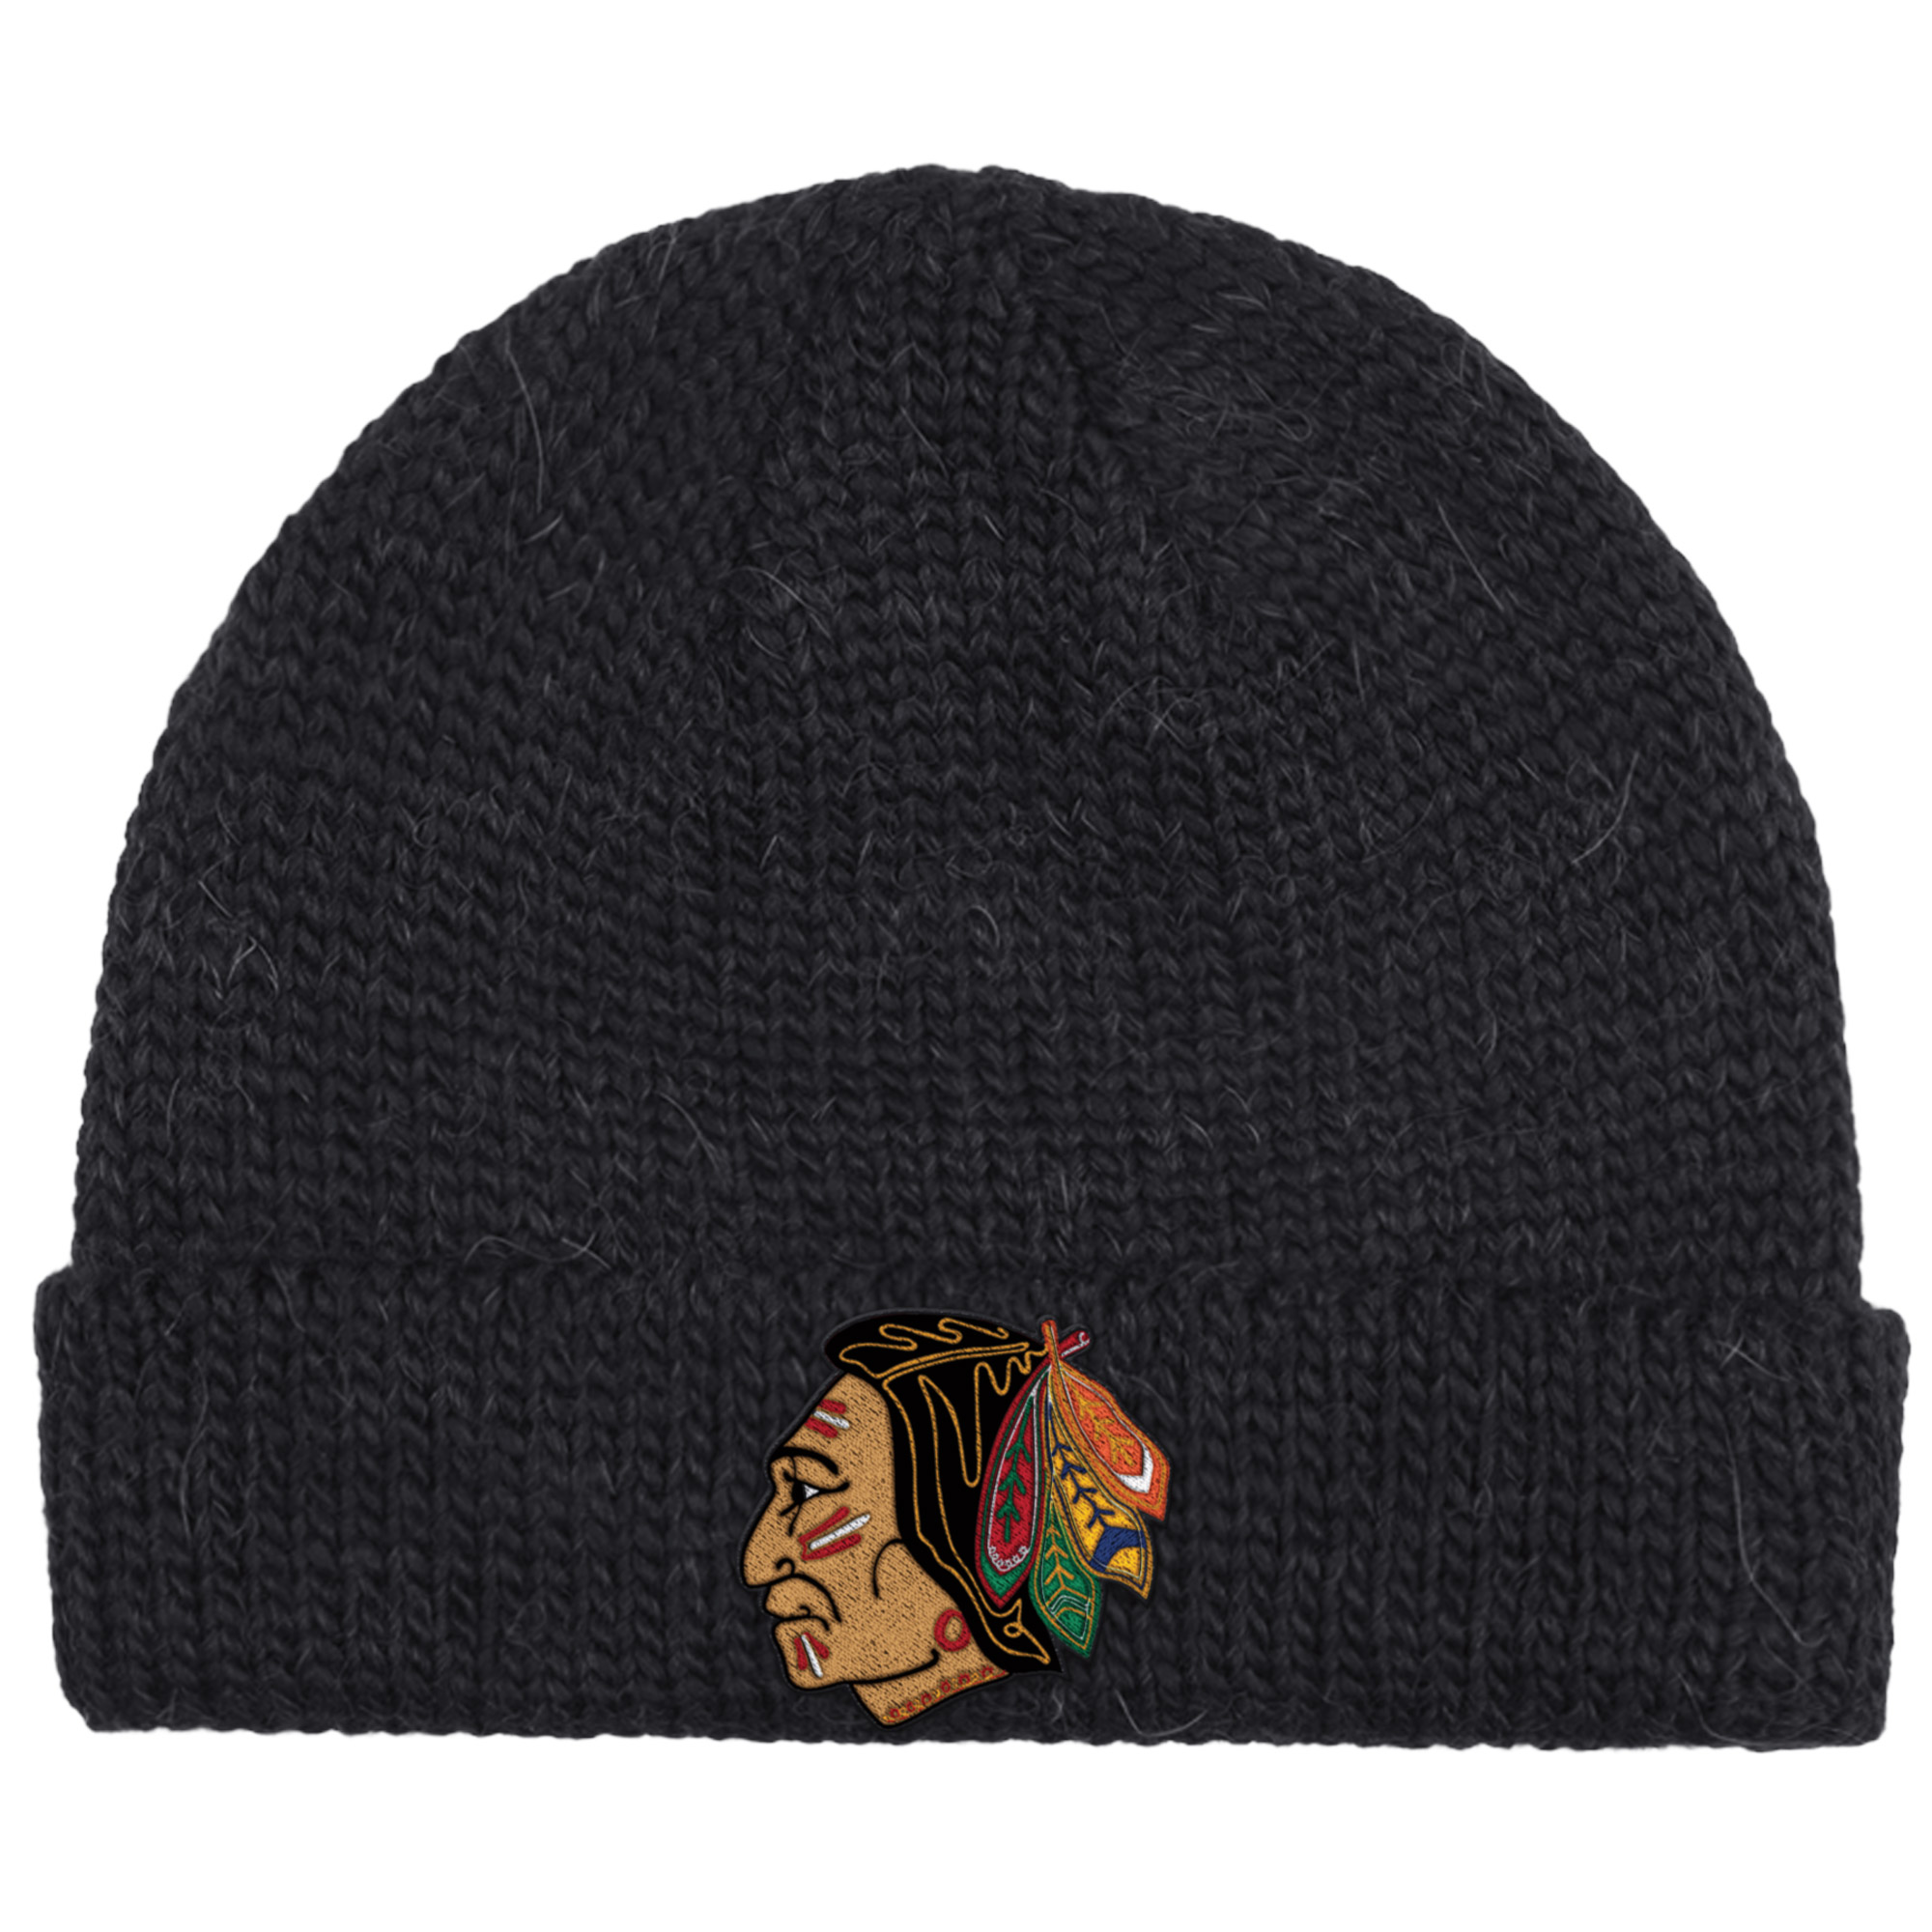 Chicago Blackhawks CCM 2017 Winter Classic Watch Knit Hat Black OSFA by REEBOK/SPORTS LICENSED DIVISION